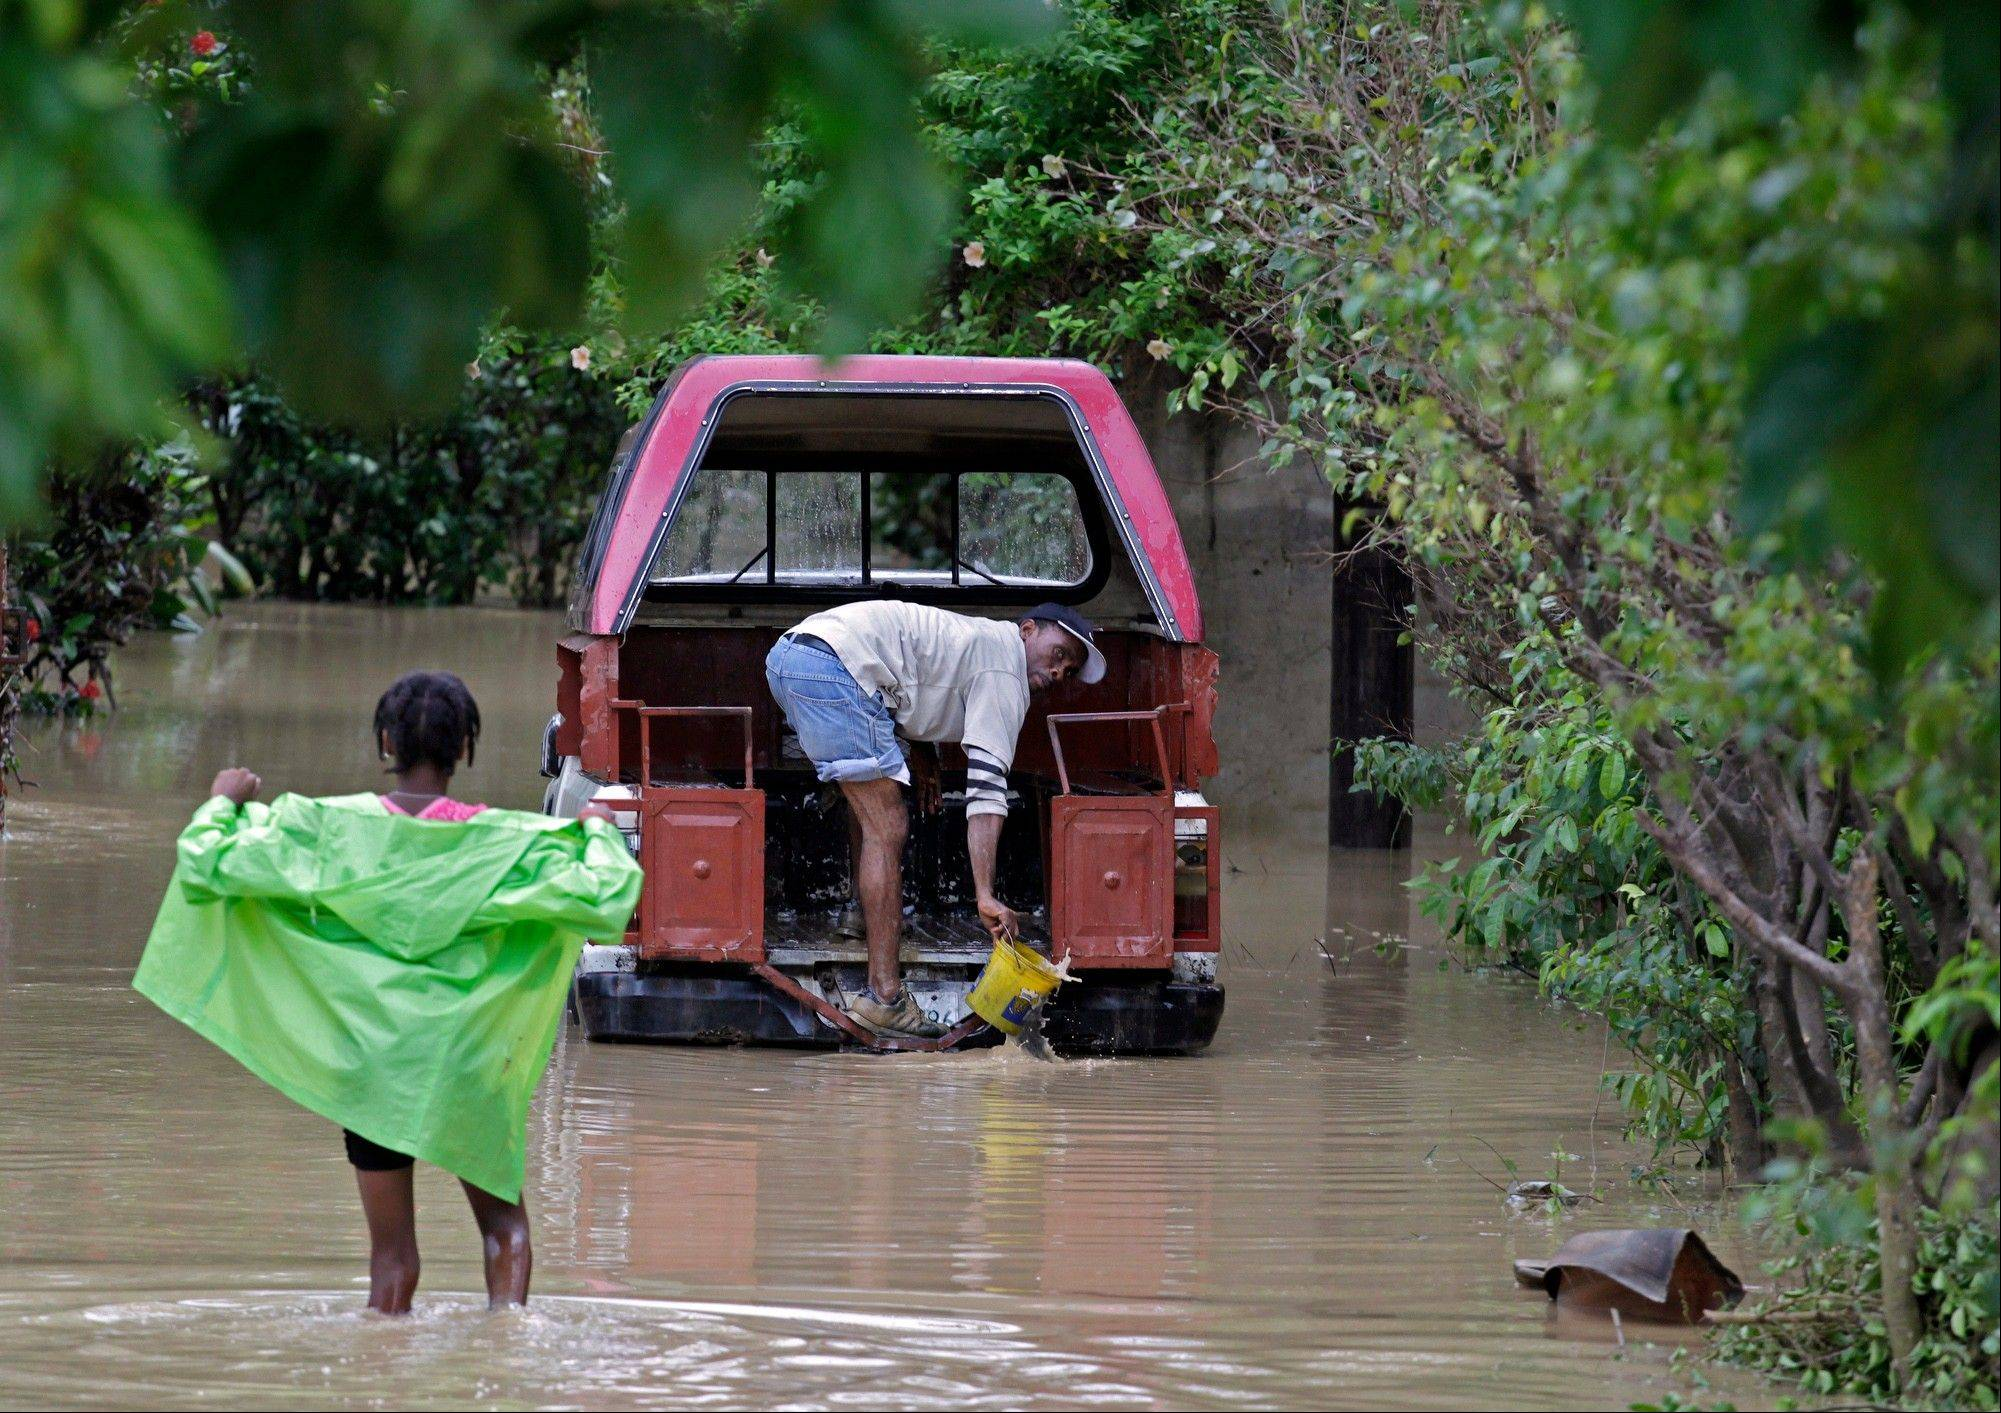 A Haitian man removes mud and flood water from his truck, caused by heavy rains from Hurricane Sandy.